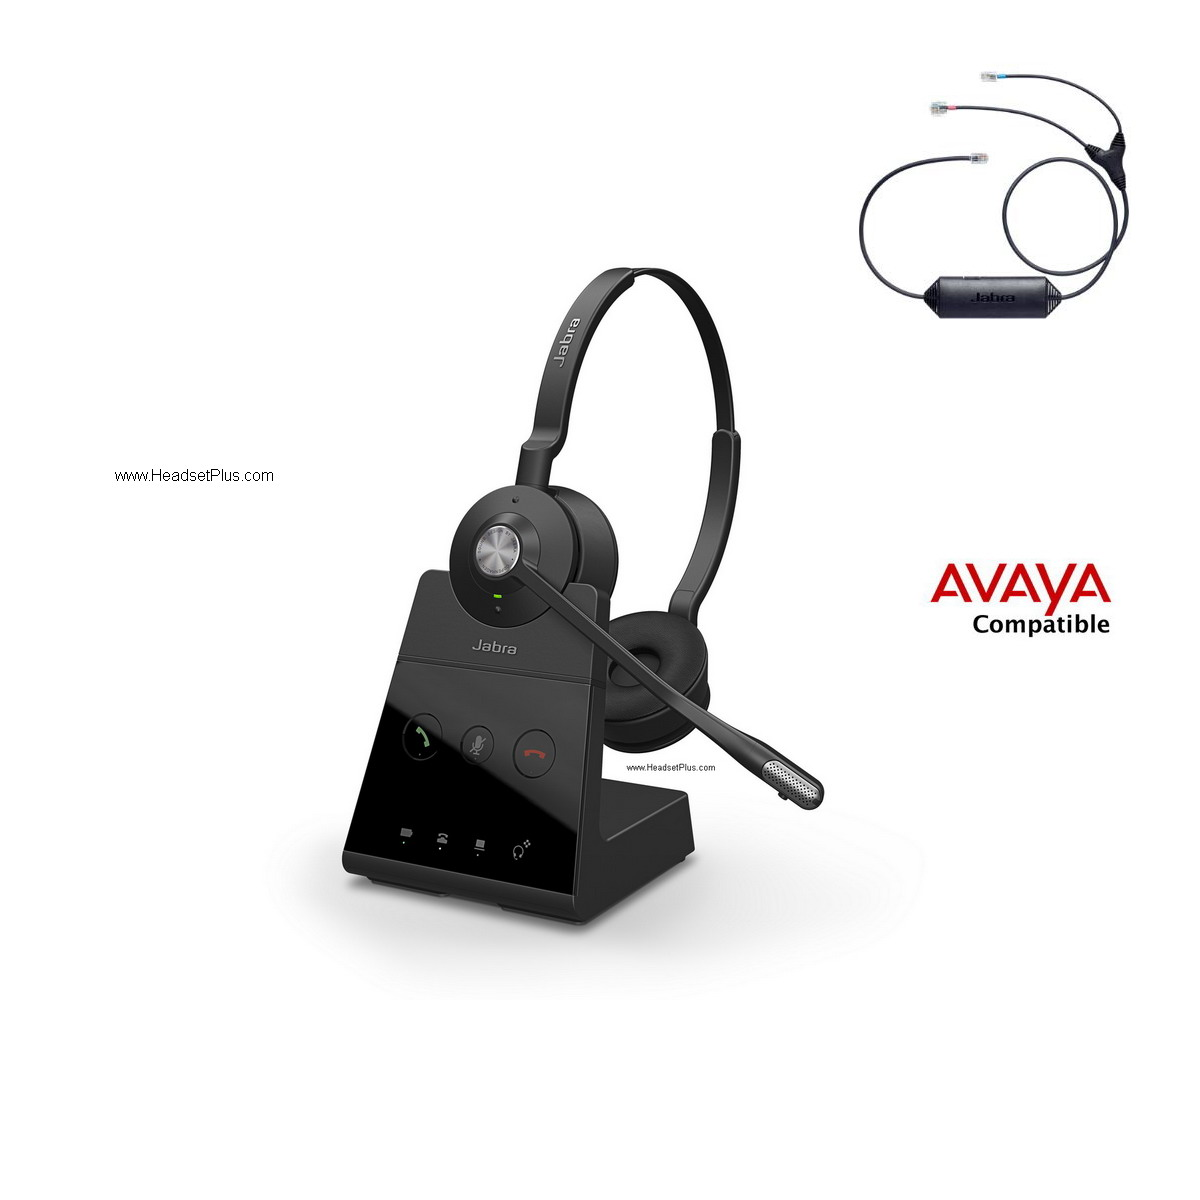 Jabra Engage 65 Stereo+EHS Avaya J100 1400 9400 9500 9600 Phones